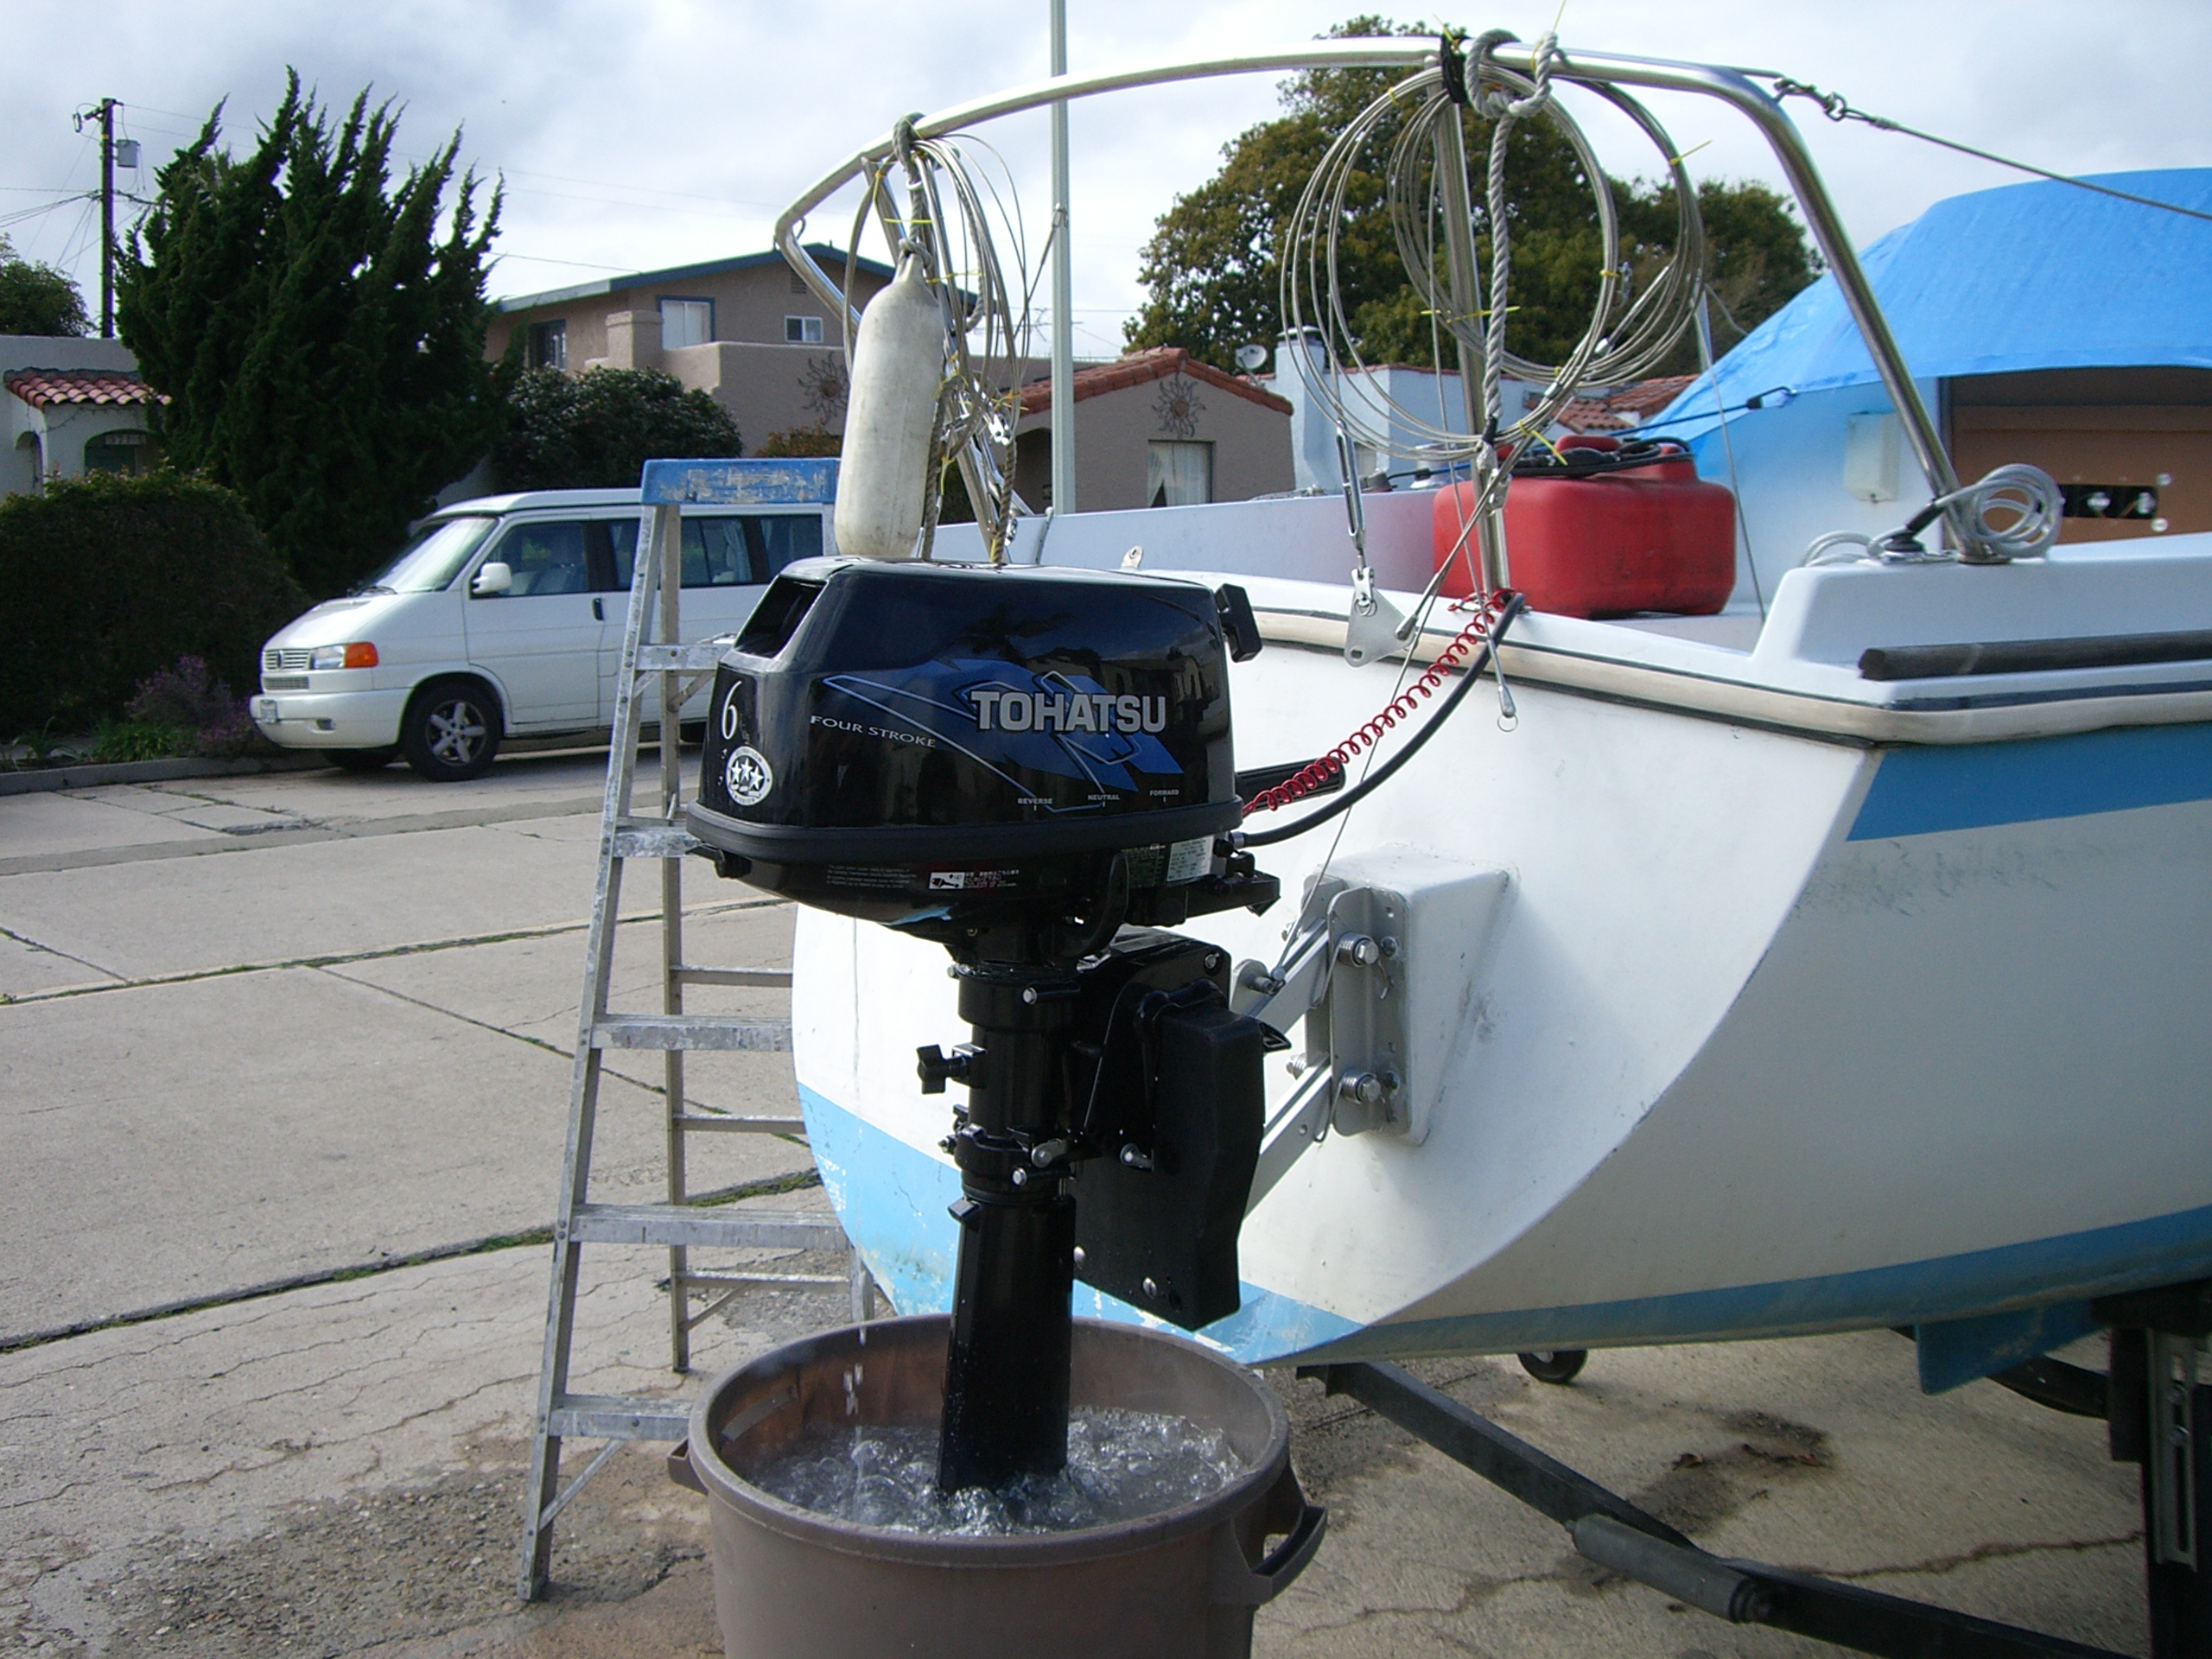 Outboard Motor Does It Have To Sit In The Middle Of The